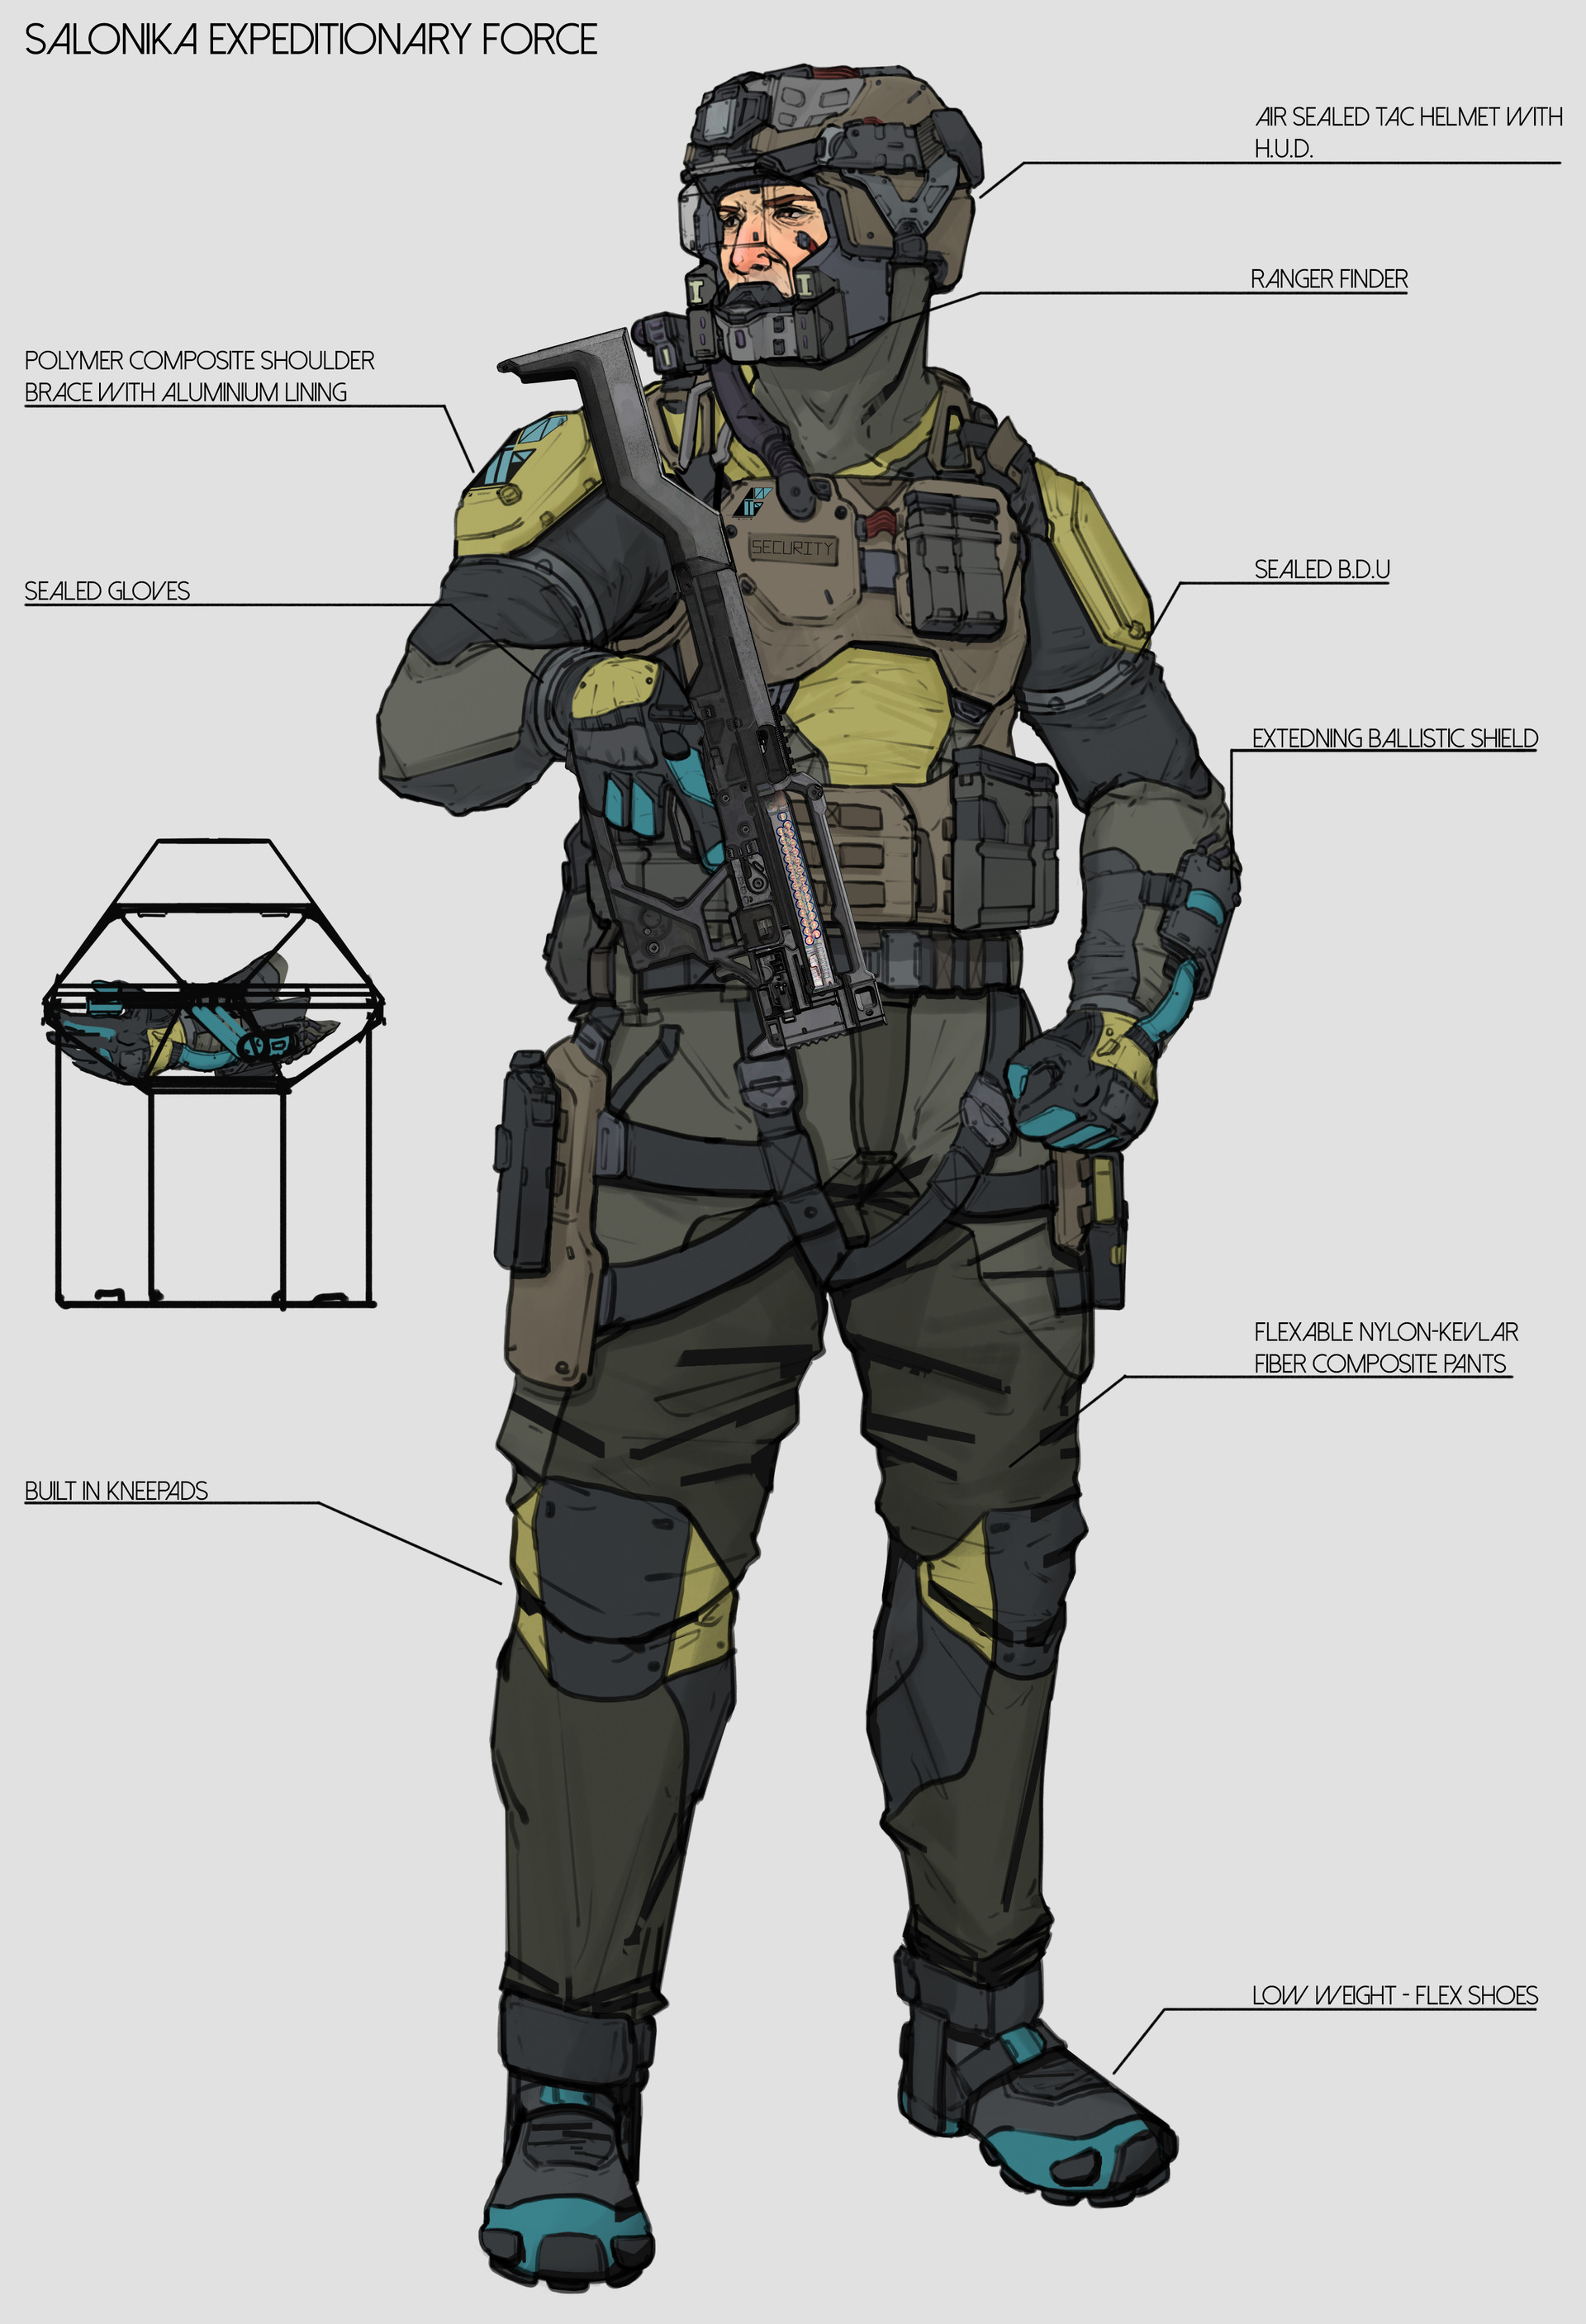 Body Armor in the future | SpaceBattles Forums